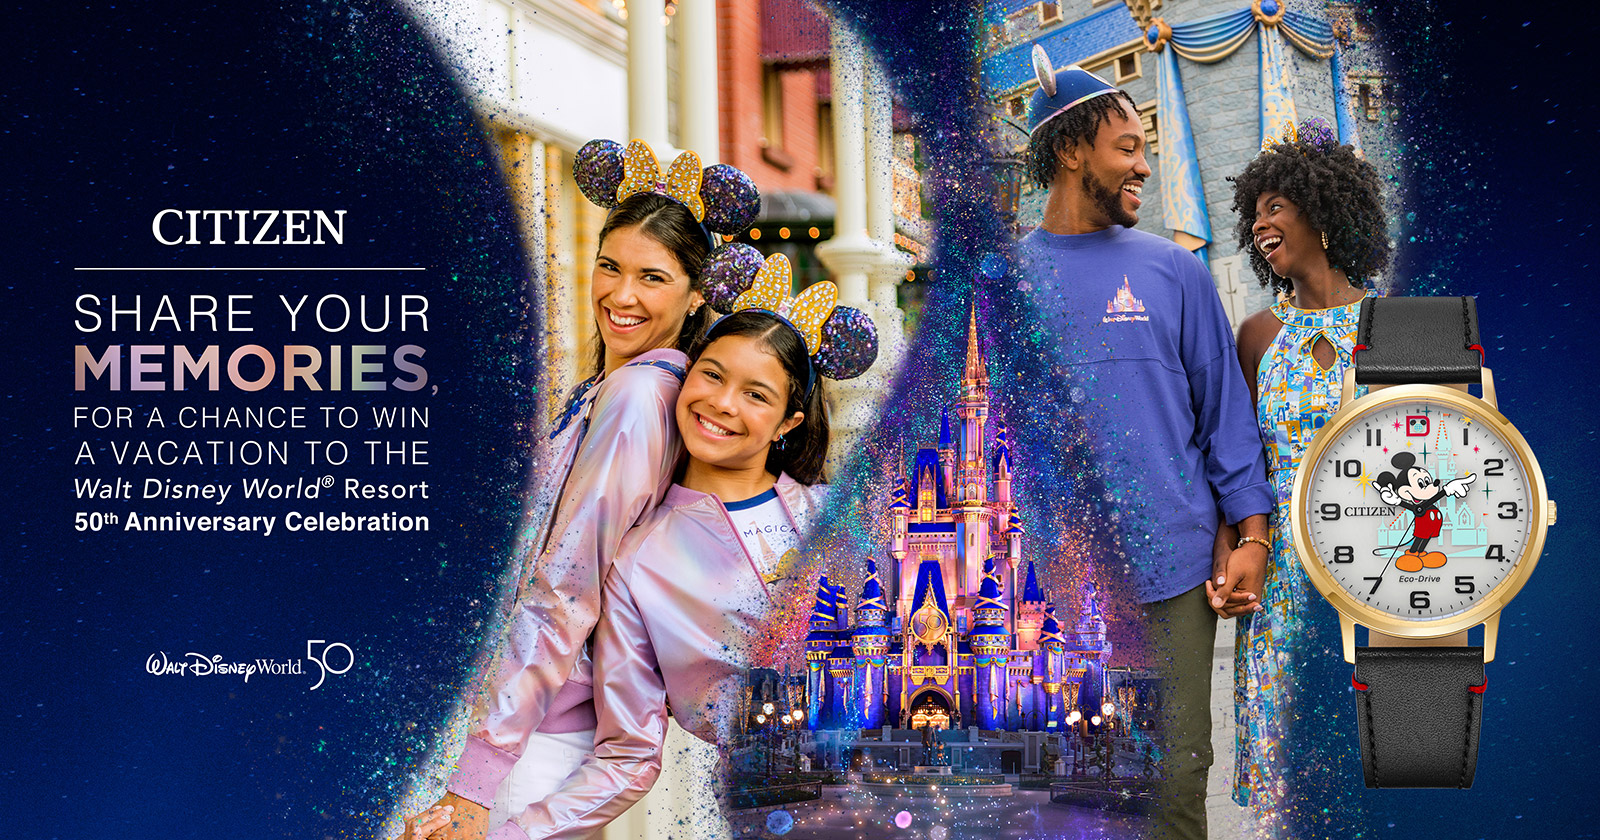 Share your memories, for a chance to win a vacation to the Walt Disney World 50th anniversary celebration